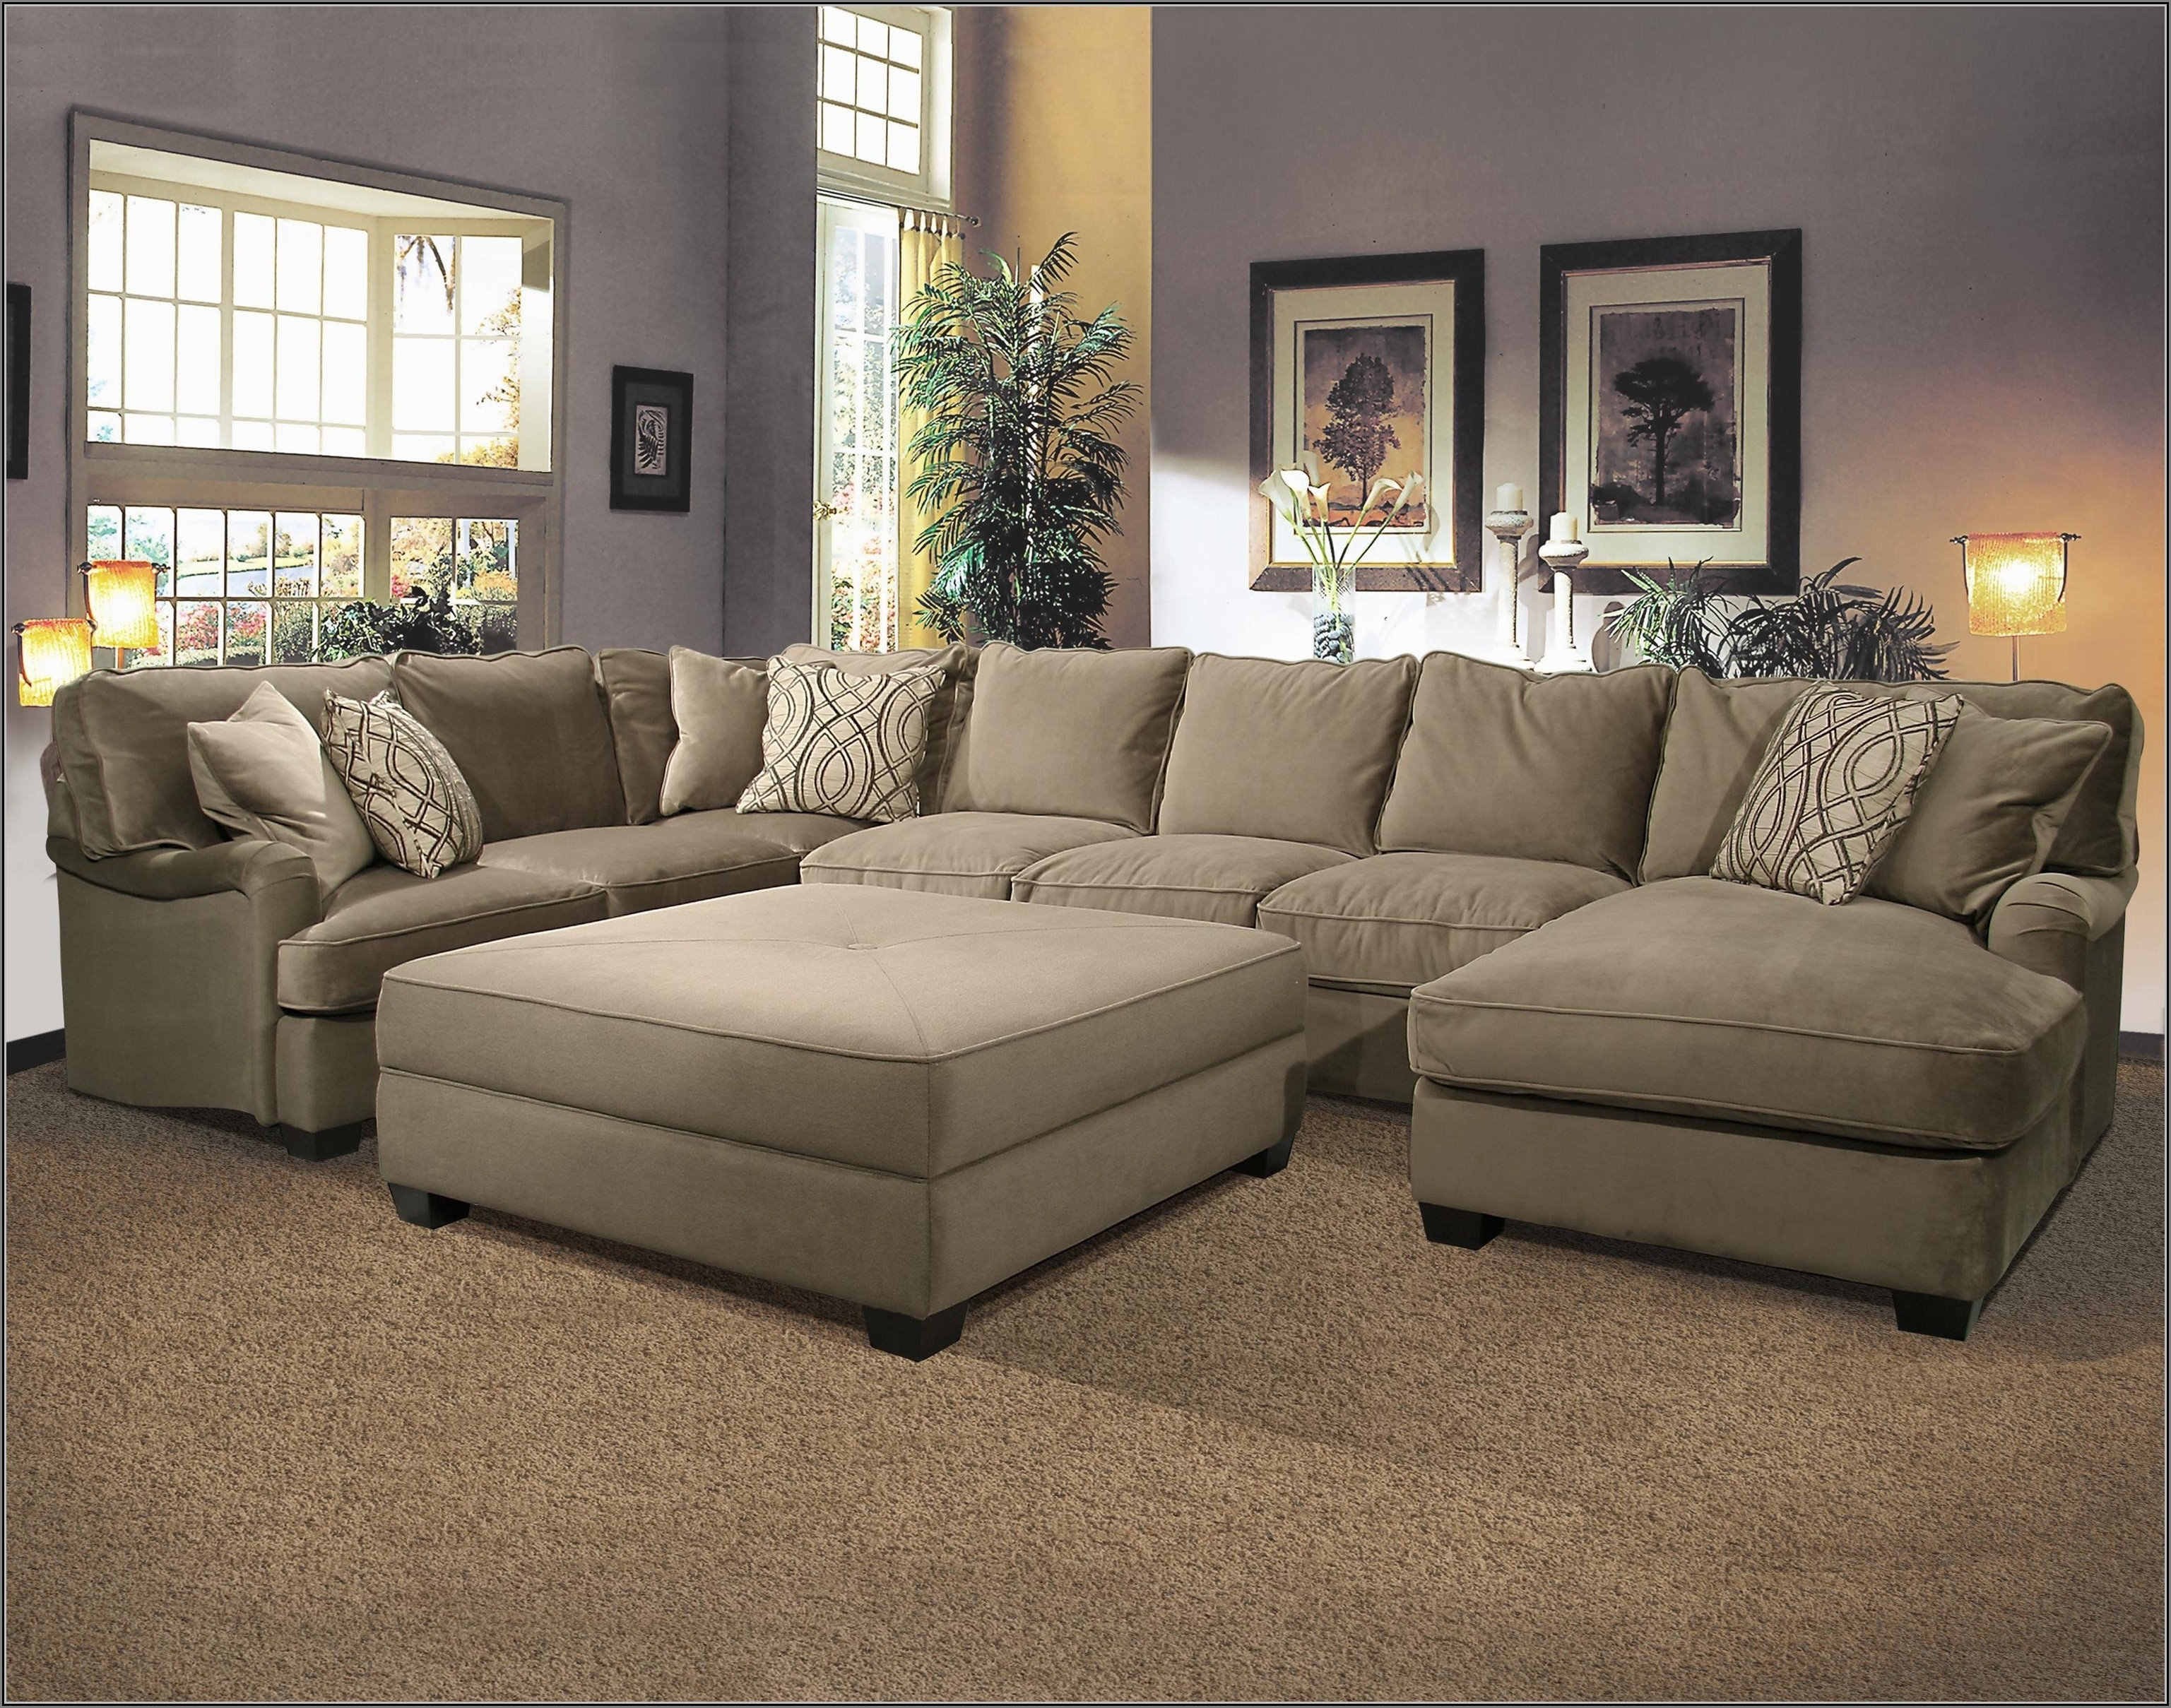 large sectional sofa with ottoman costco leather savoy 10 best couches ideas